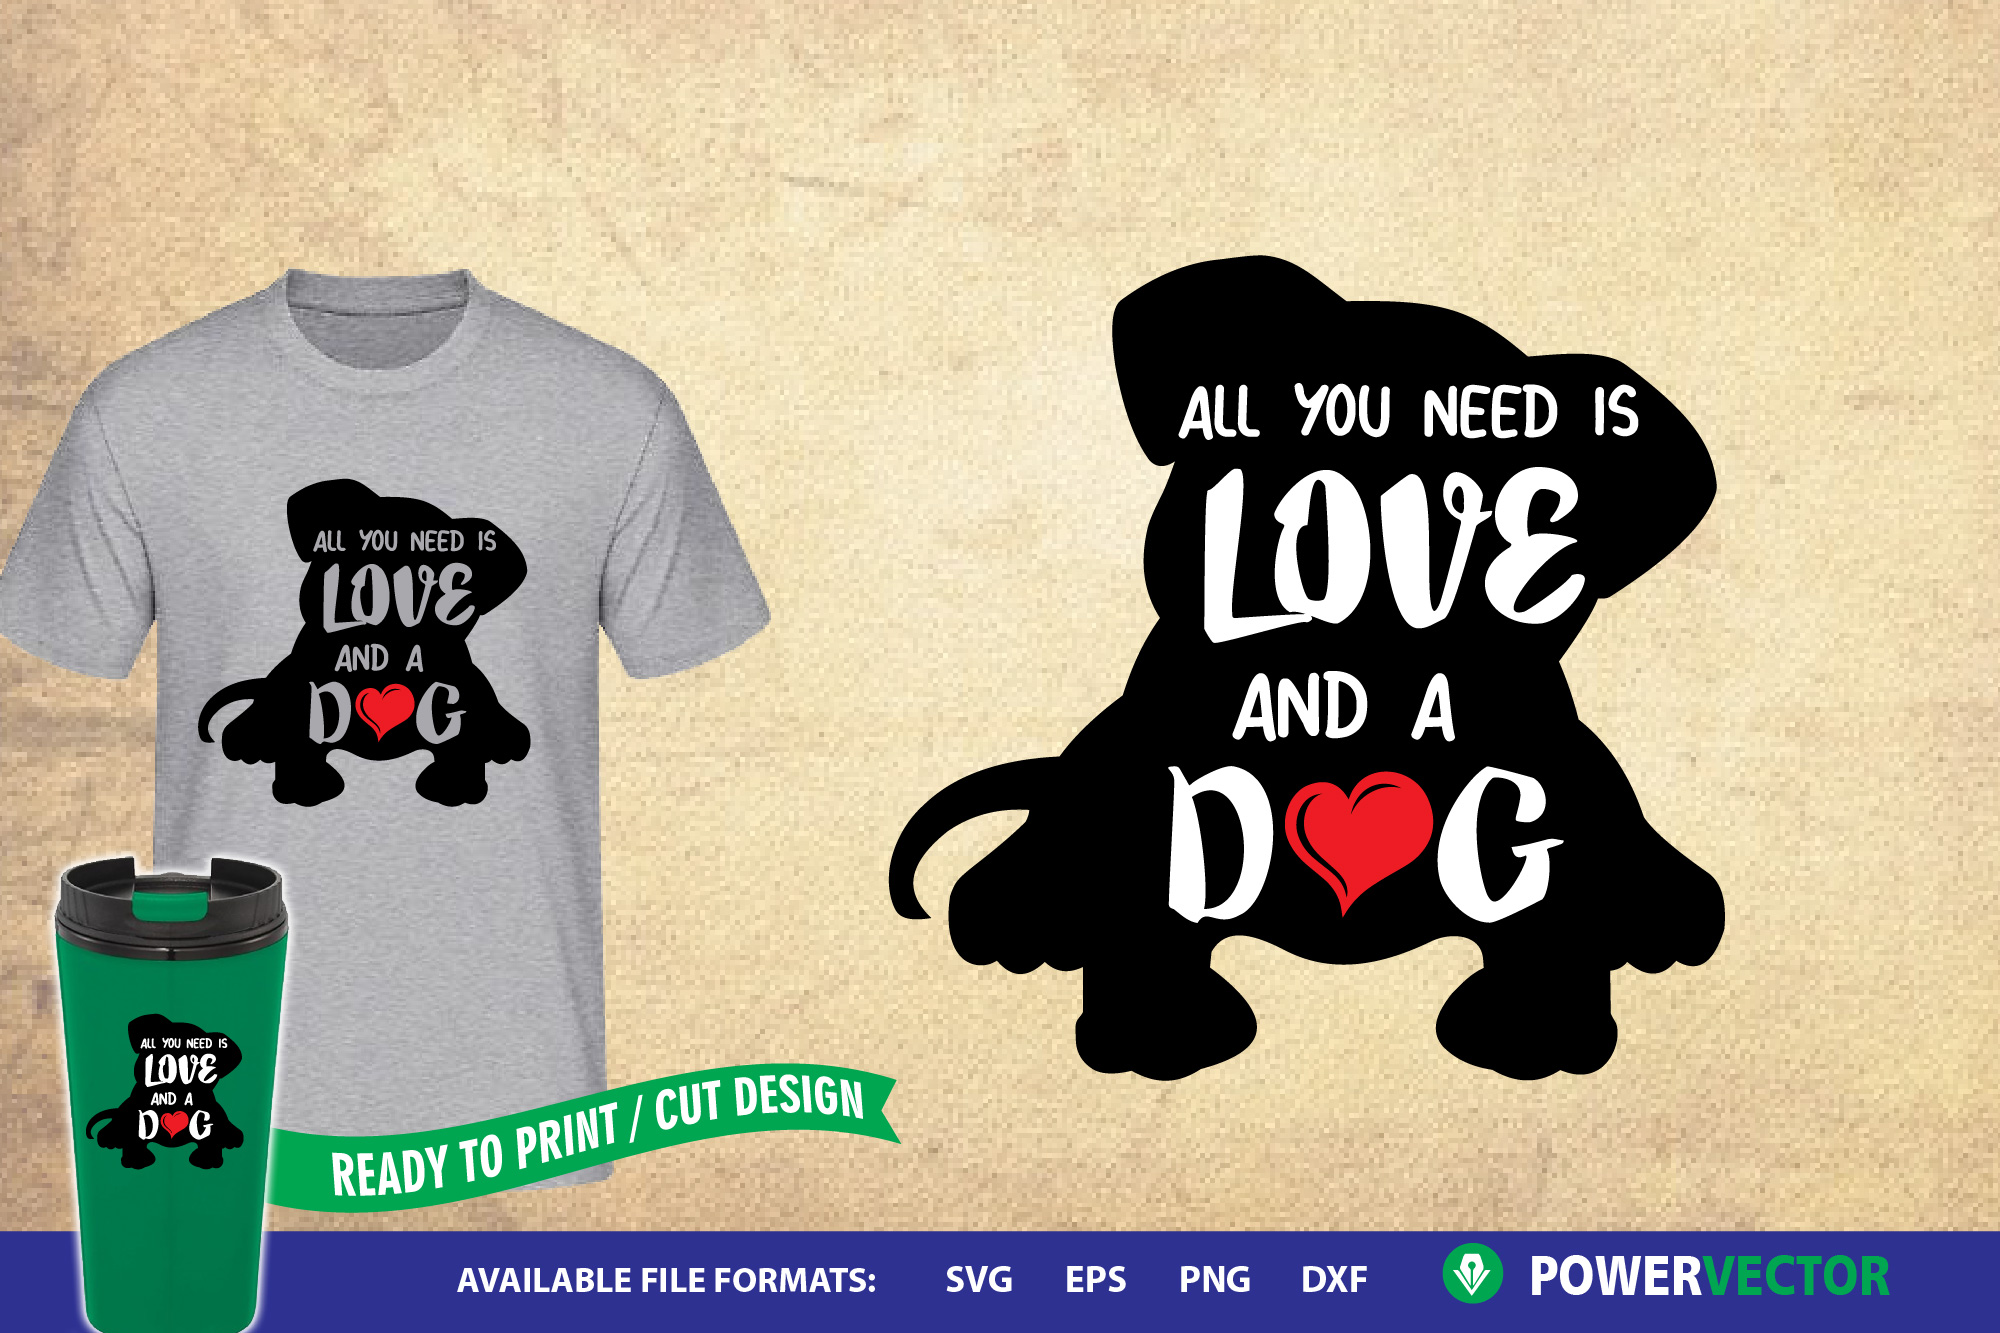 All you need is love and a dog - svg design for crafting example image 1